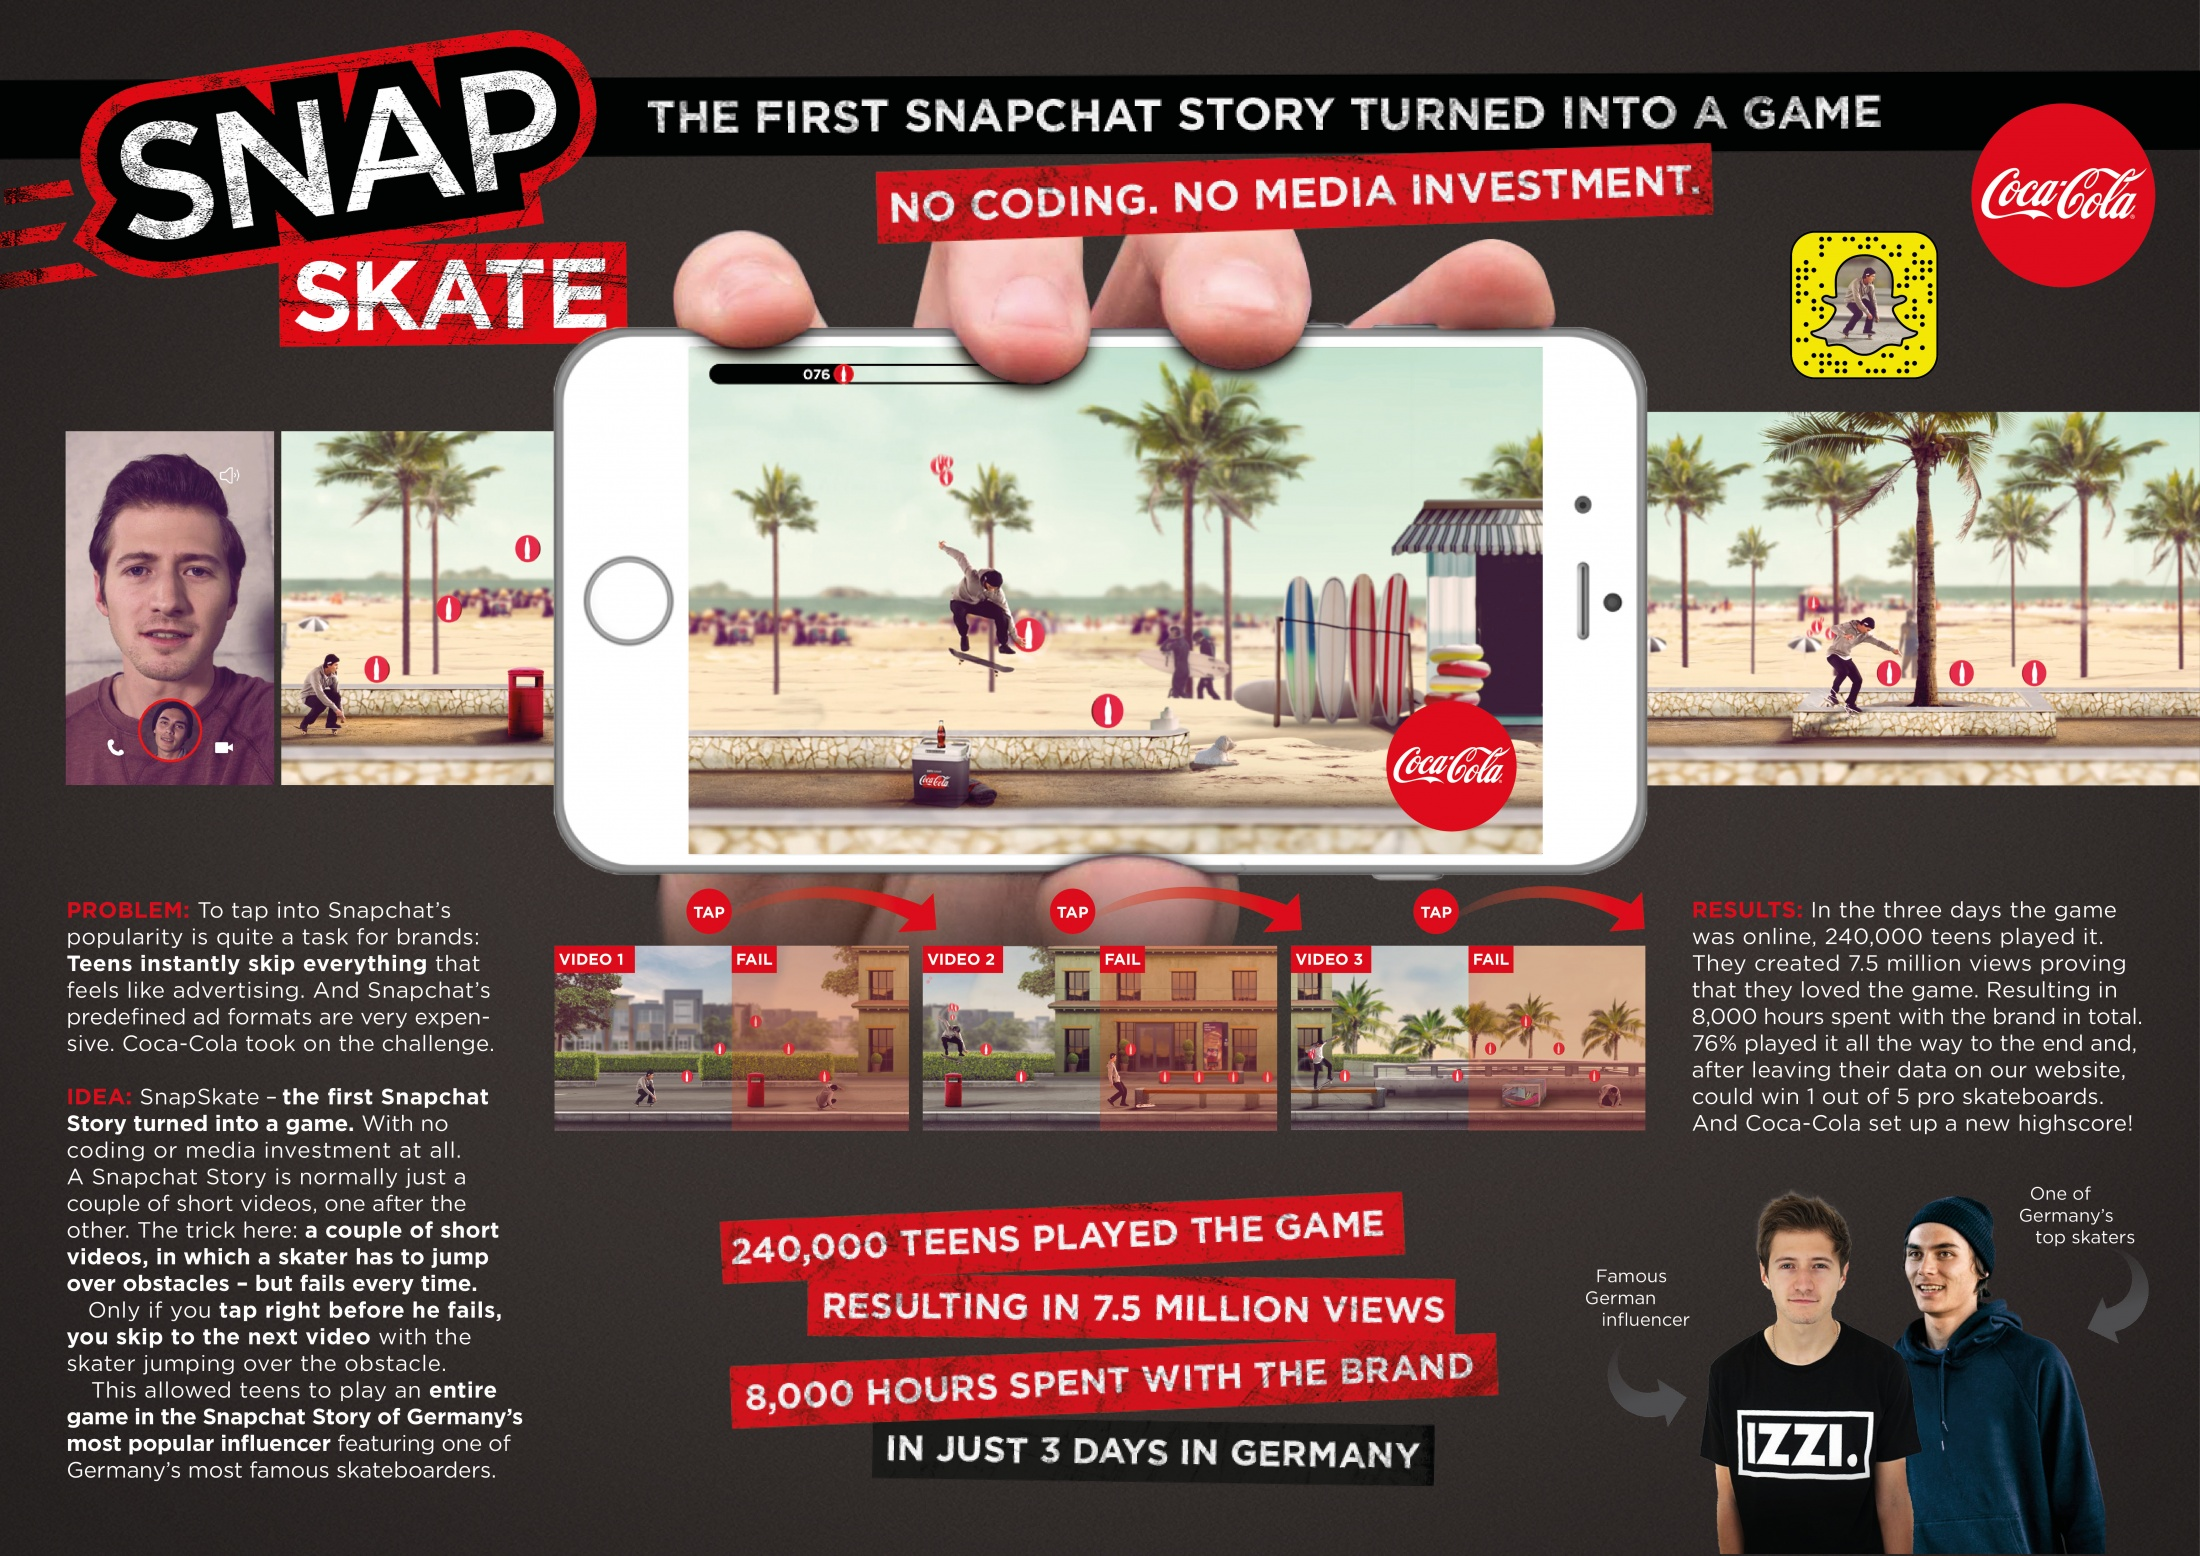 Thumbnail for SnapSkate